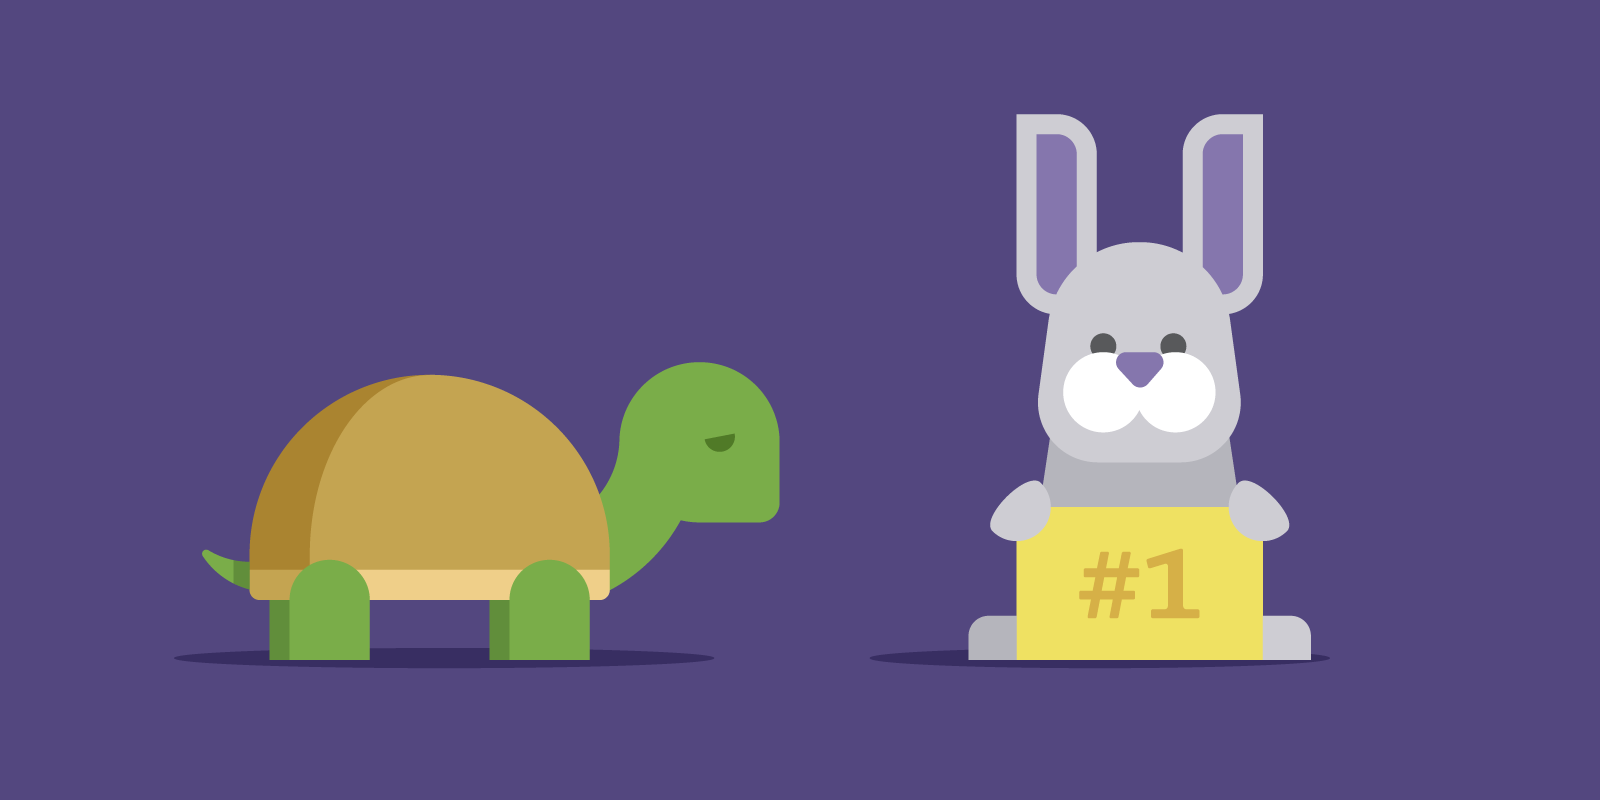 How to Be the Tortoise in a World Where Only Hares Make the Front Page